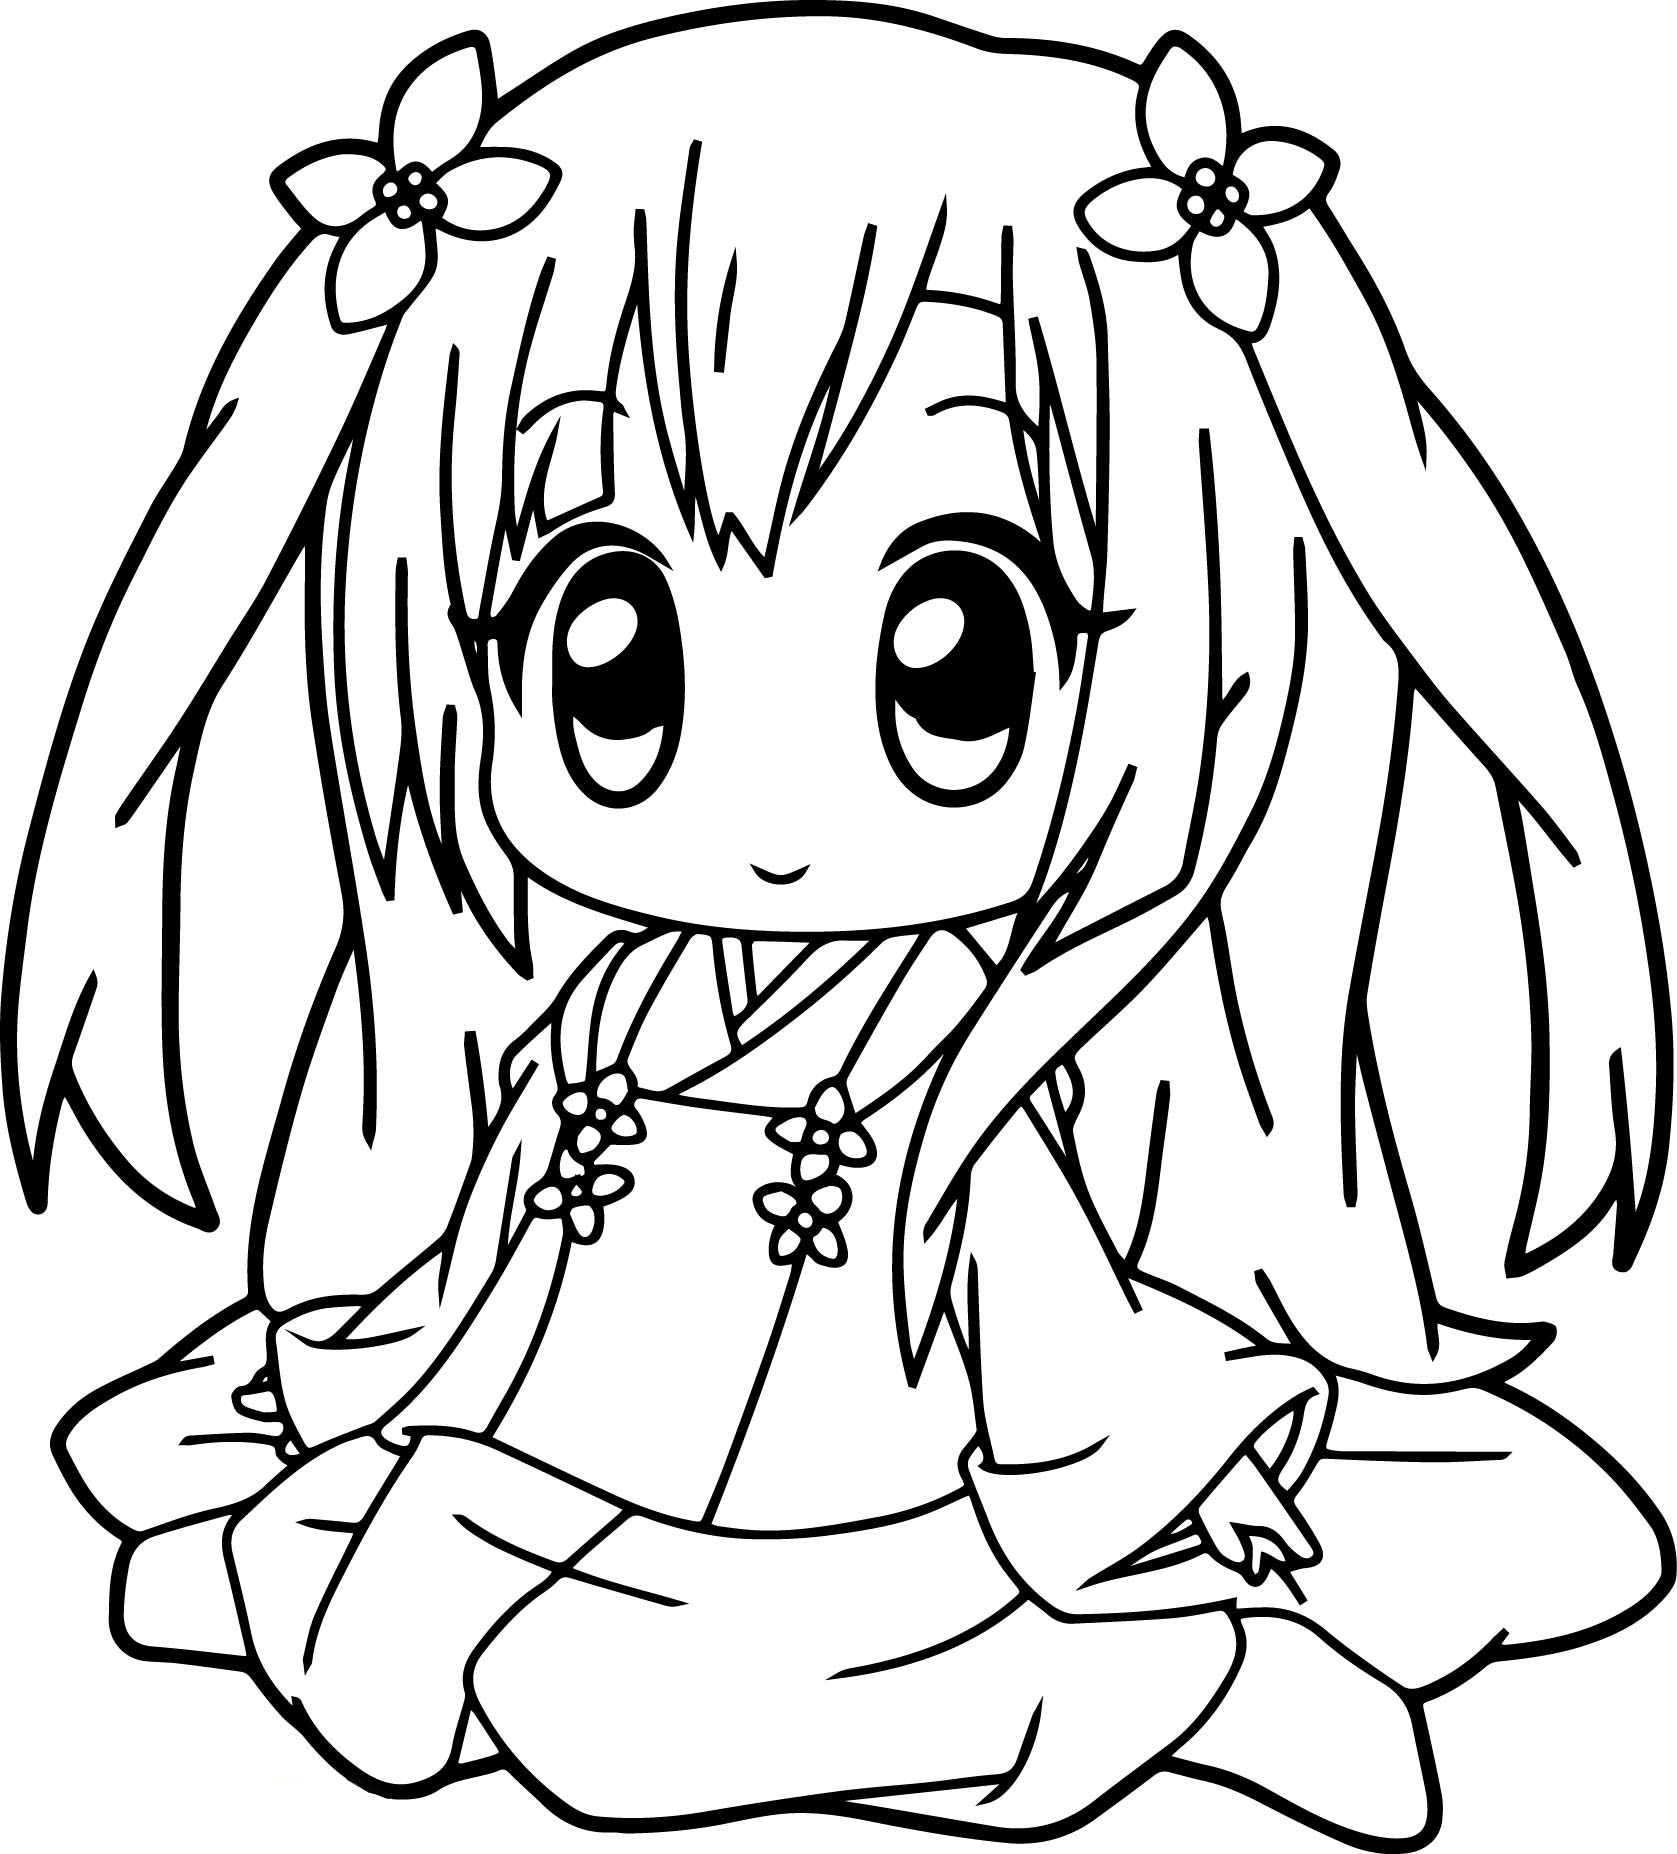 colering pages for girls detailed coloring pages for girls at getcoloringscom for pages girls colering